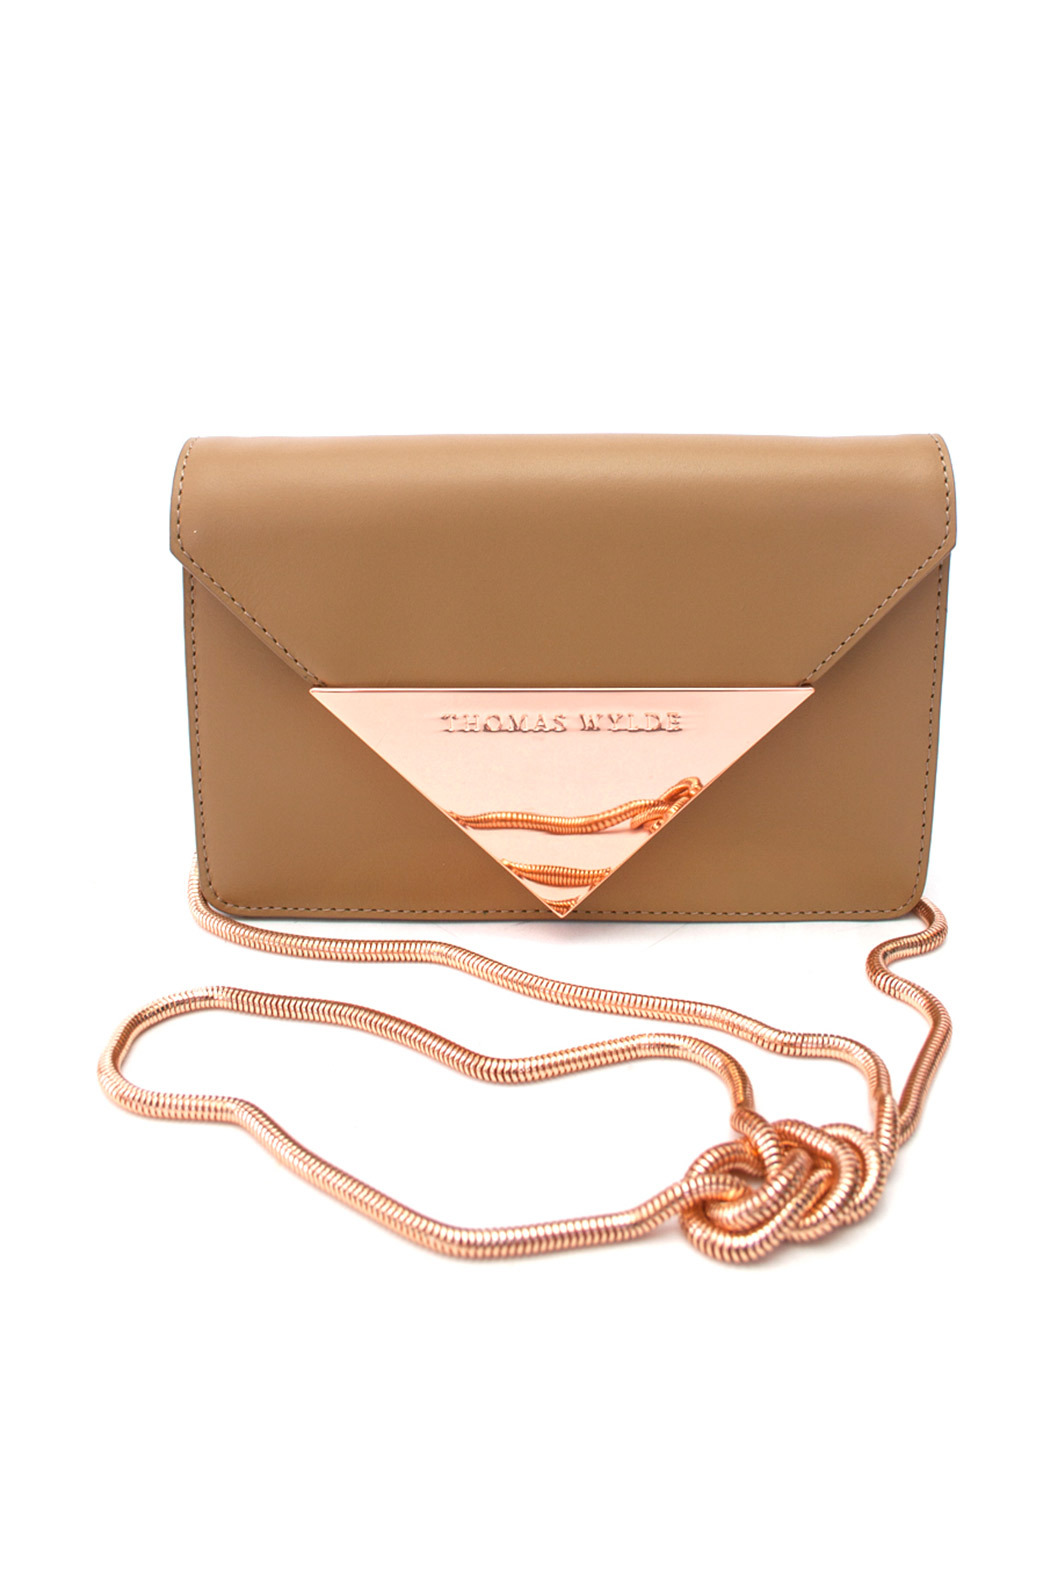 Thomas Wylde Small Leather - Side Cropped Image